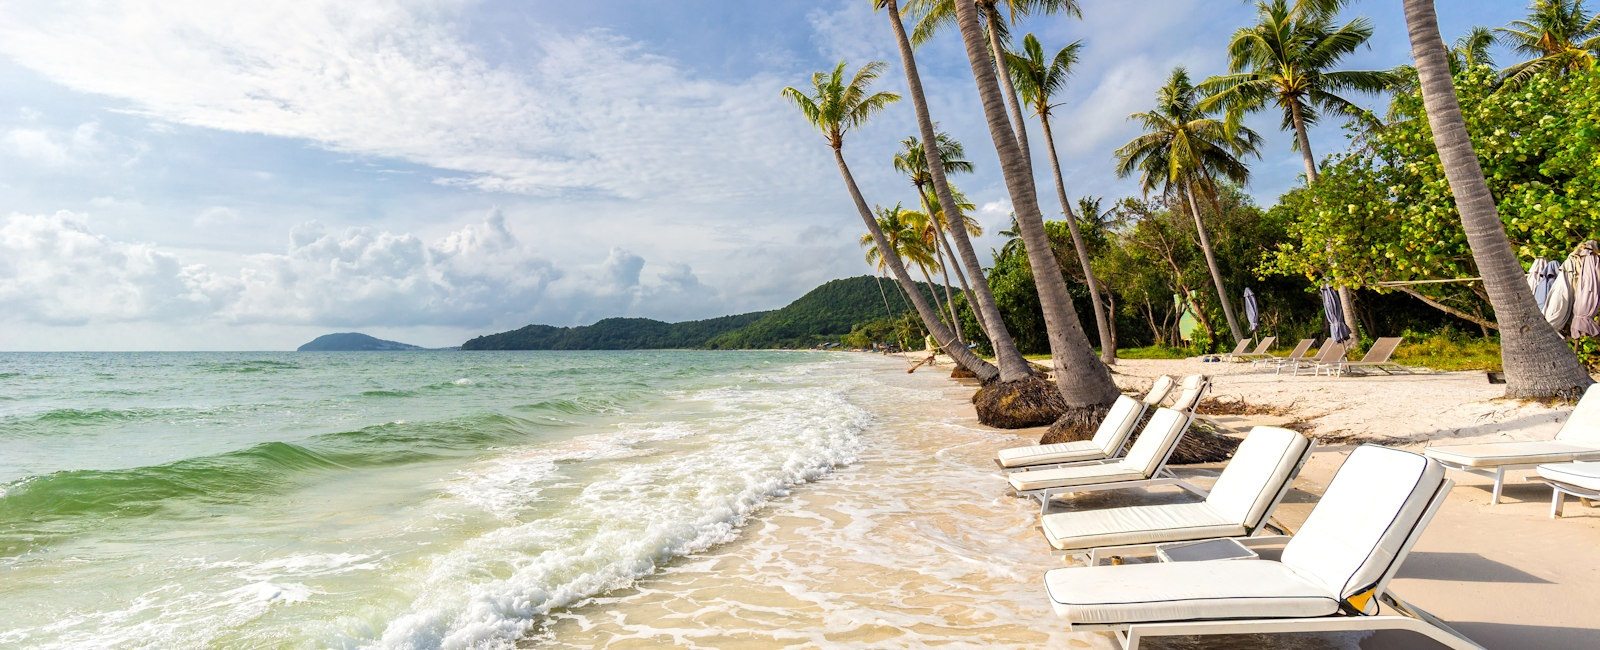 Phu Quoc overview